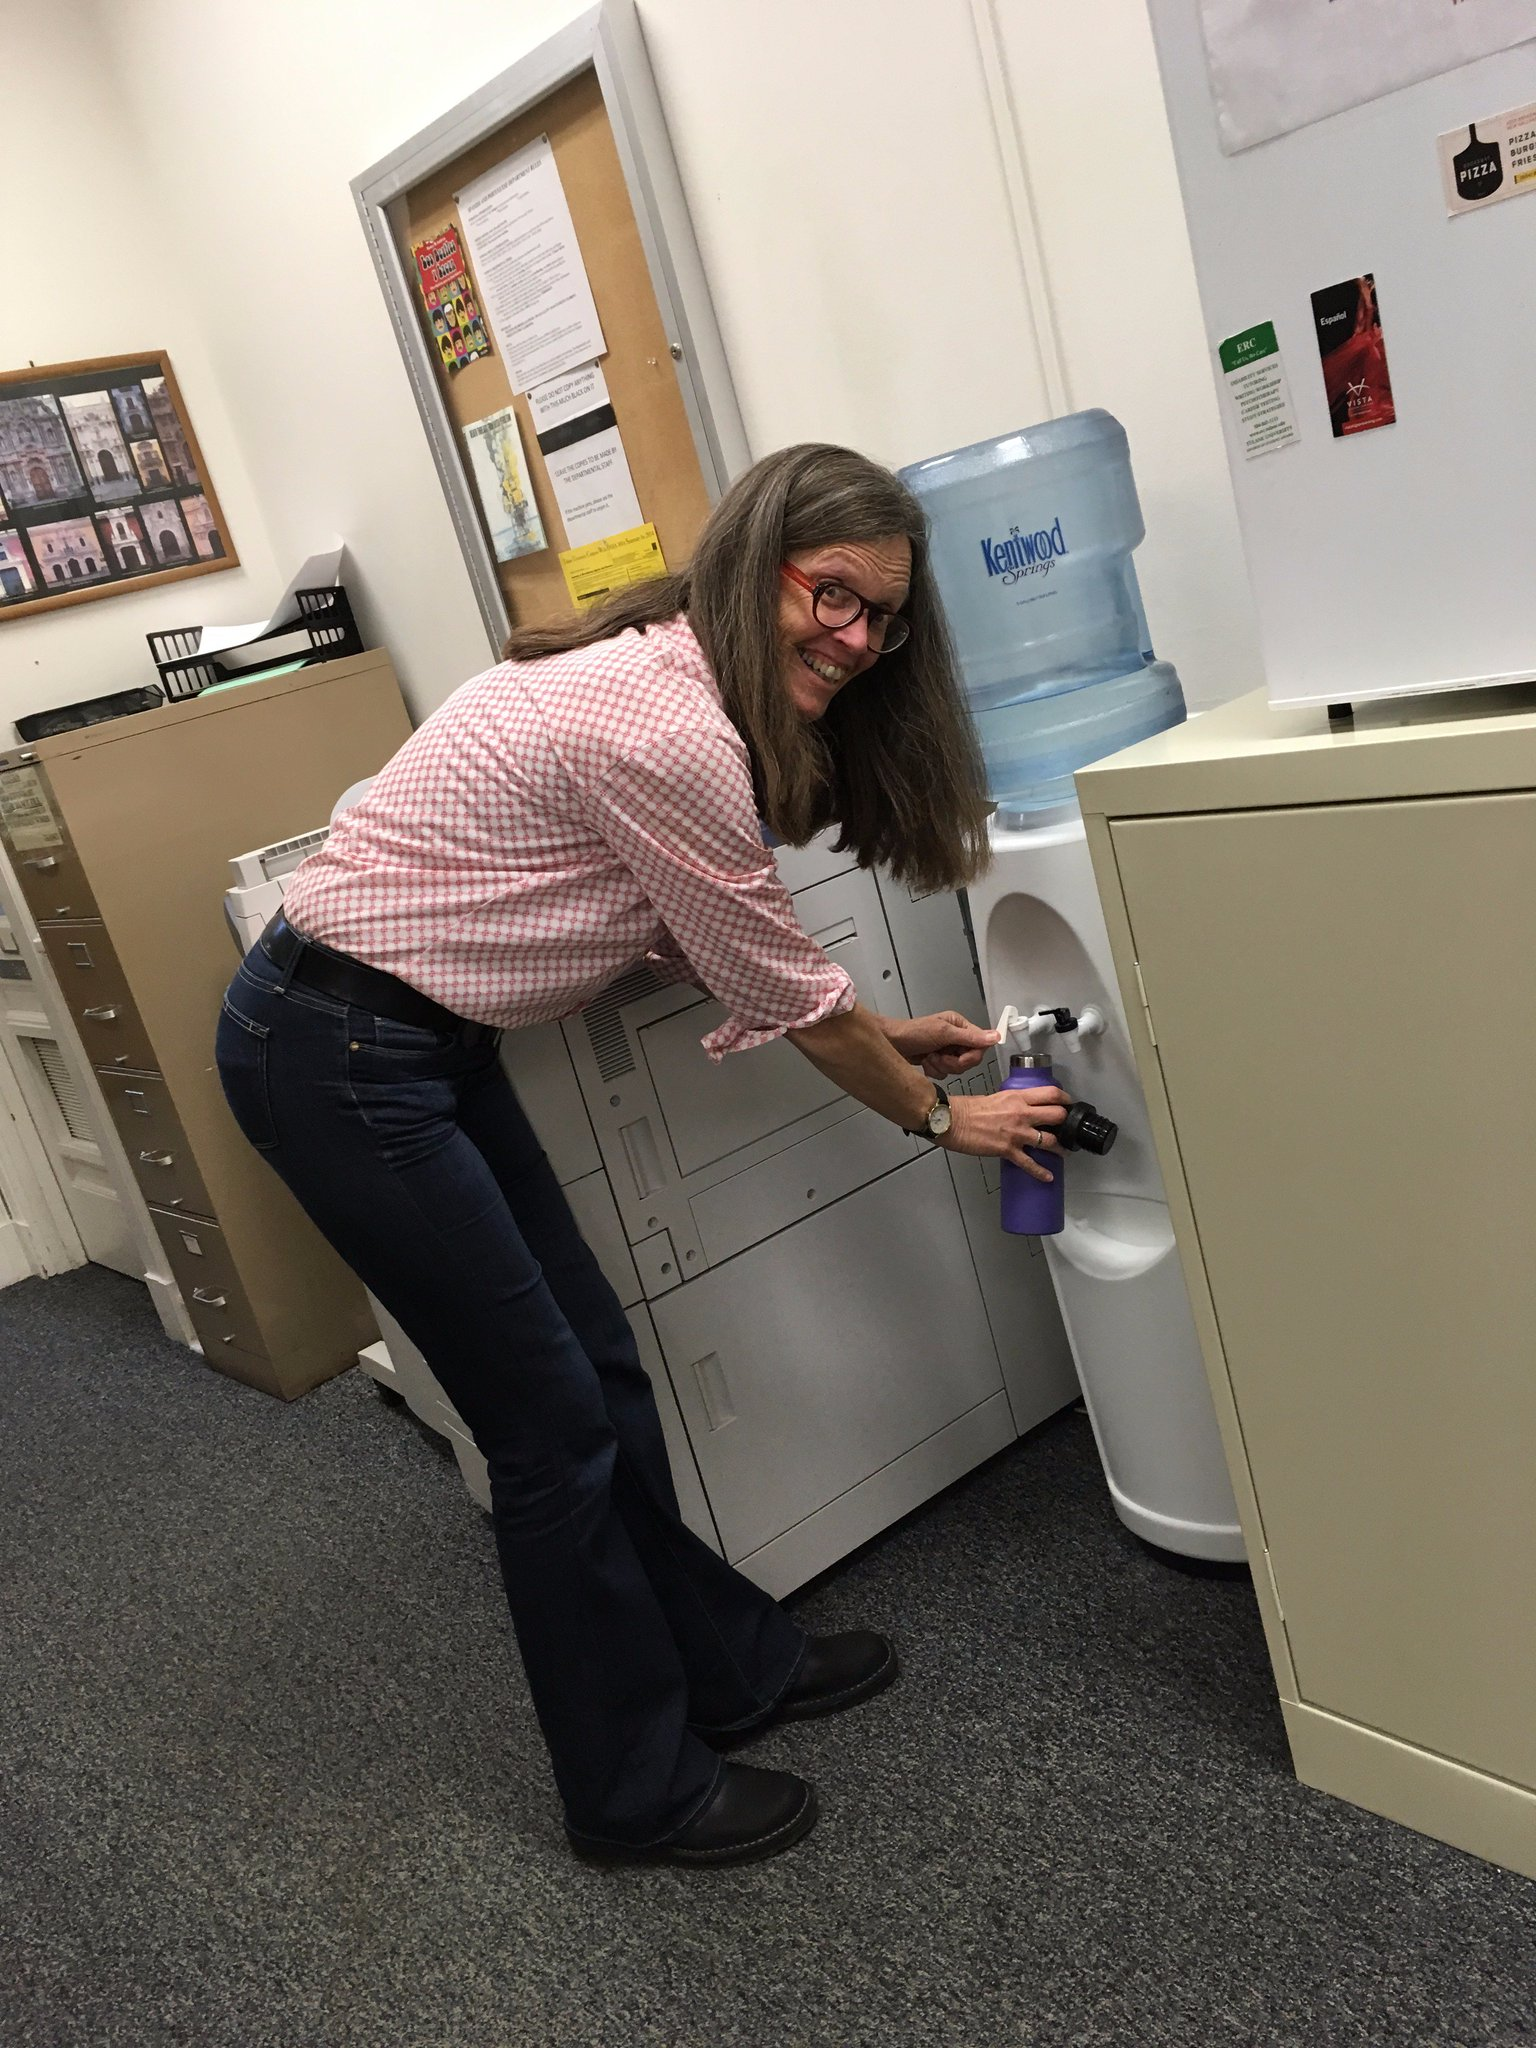 Our department (and our chair, Jean Dangler) reduces waste by filling our bottles from the water cooler! #TulaneRecycles @GreenTulane https://t.co/UBpMy7CHiy